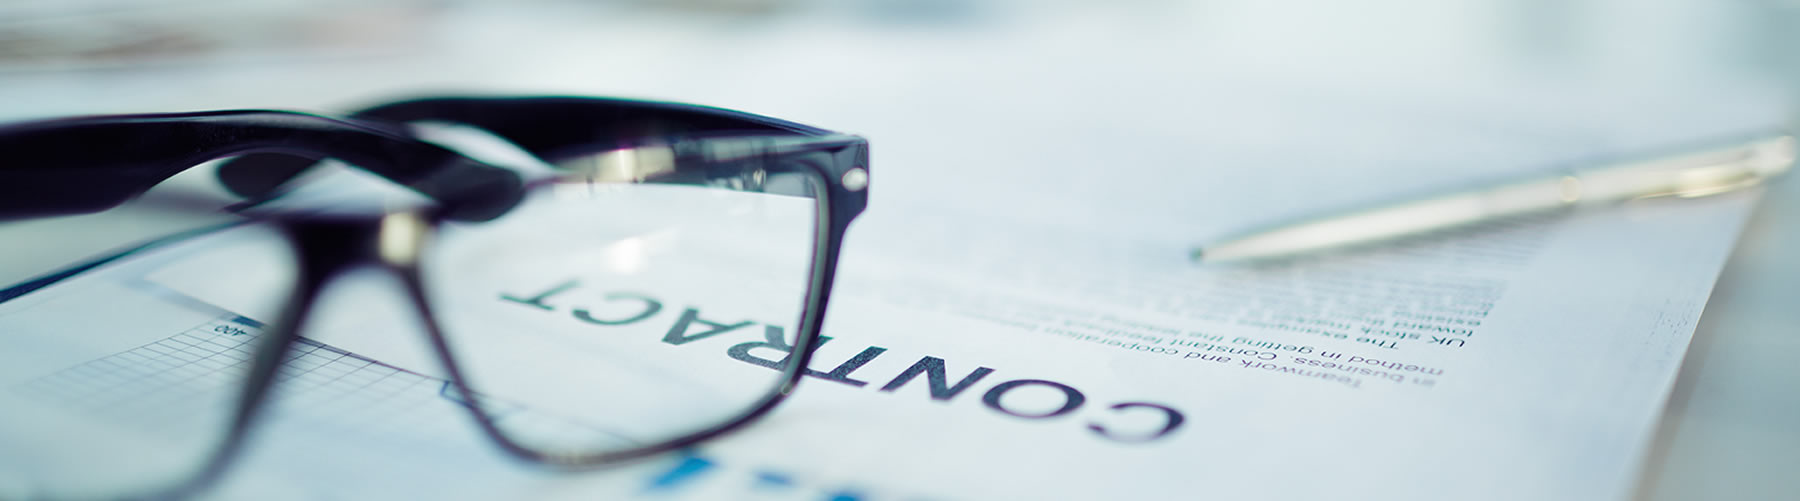 business documents with glasses on the table